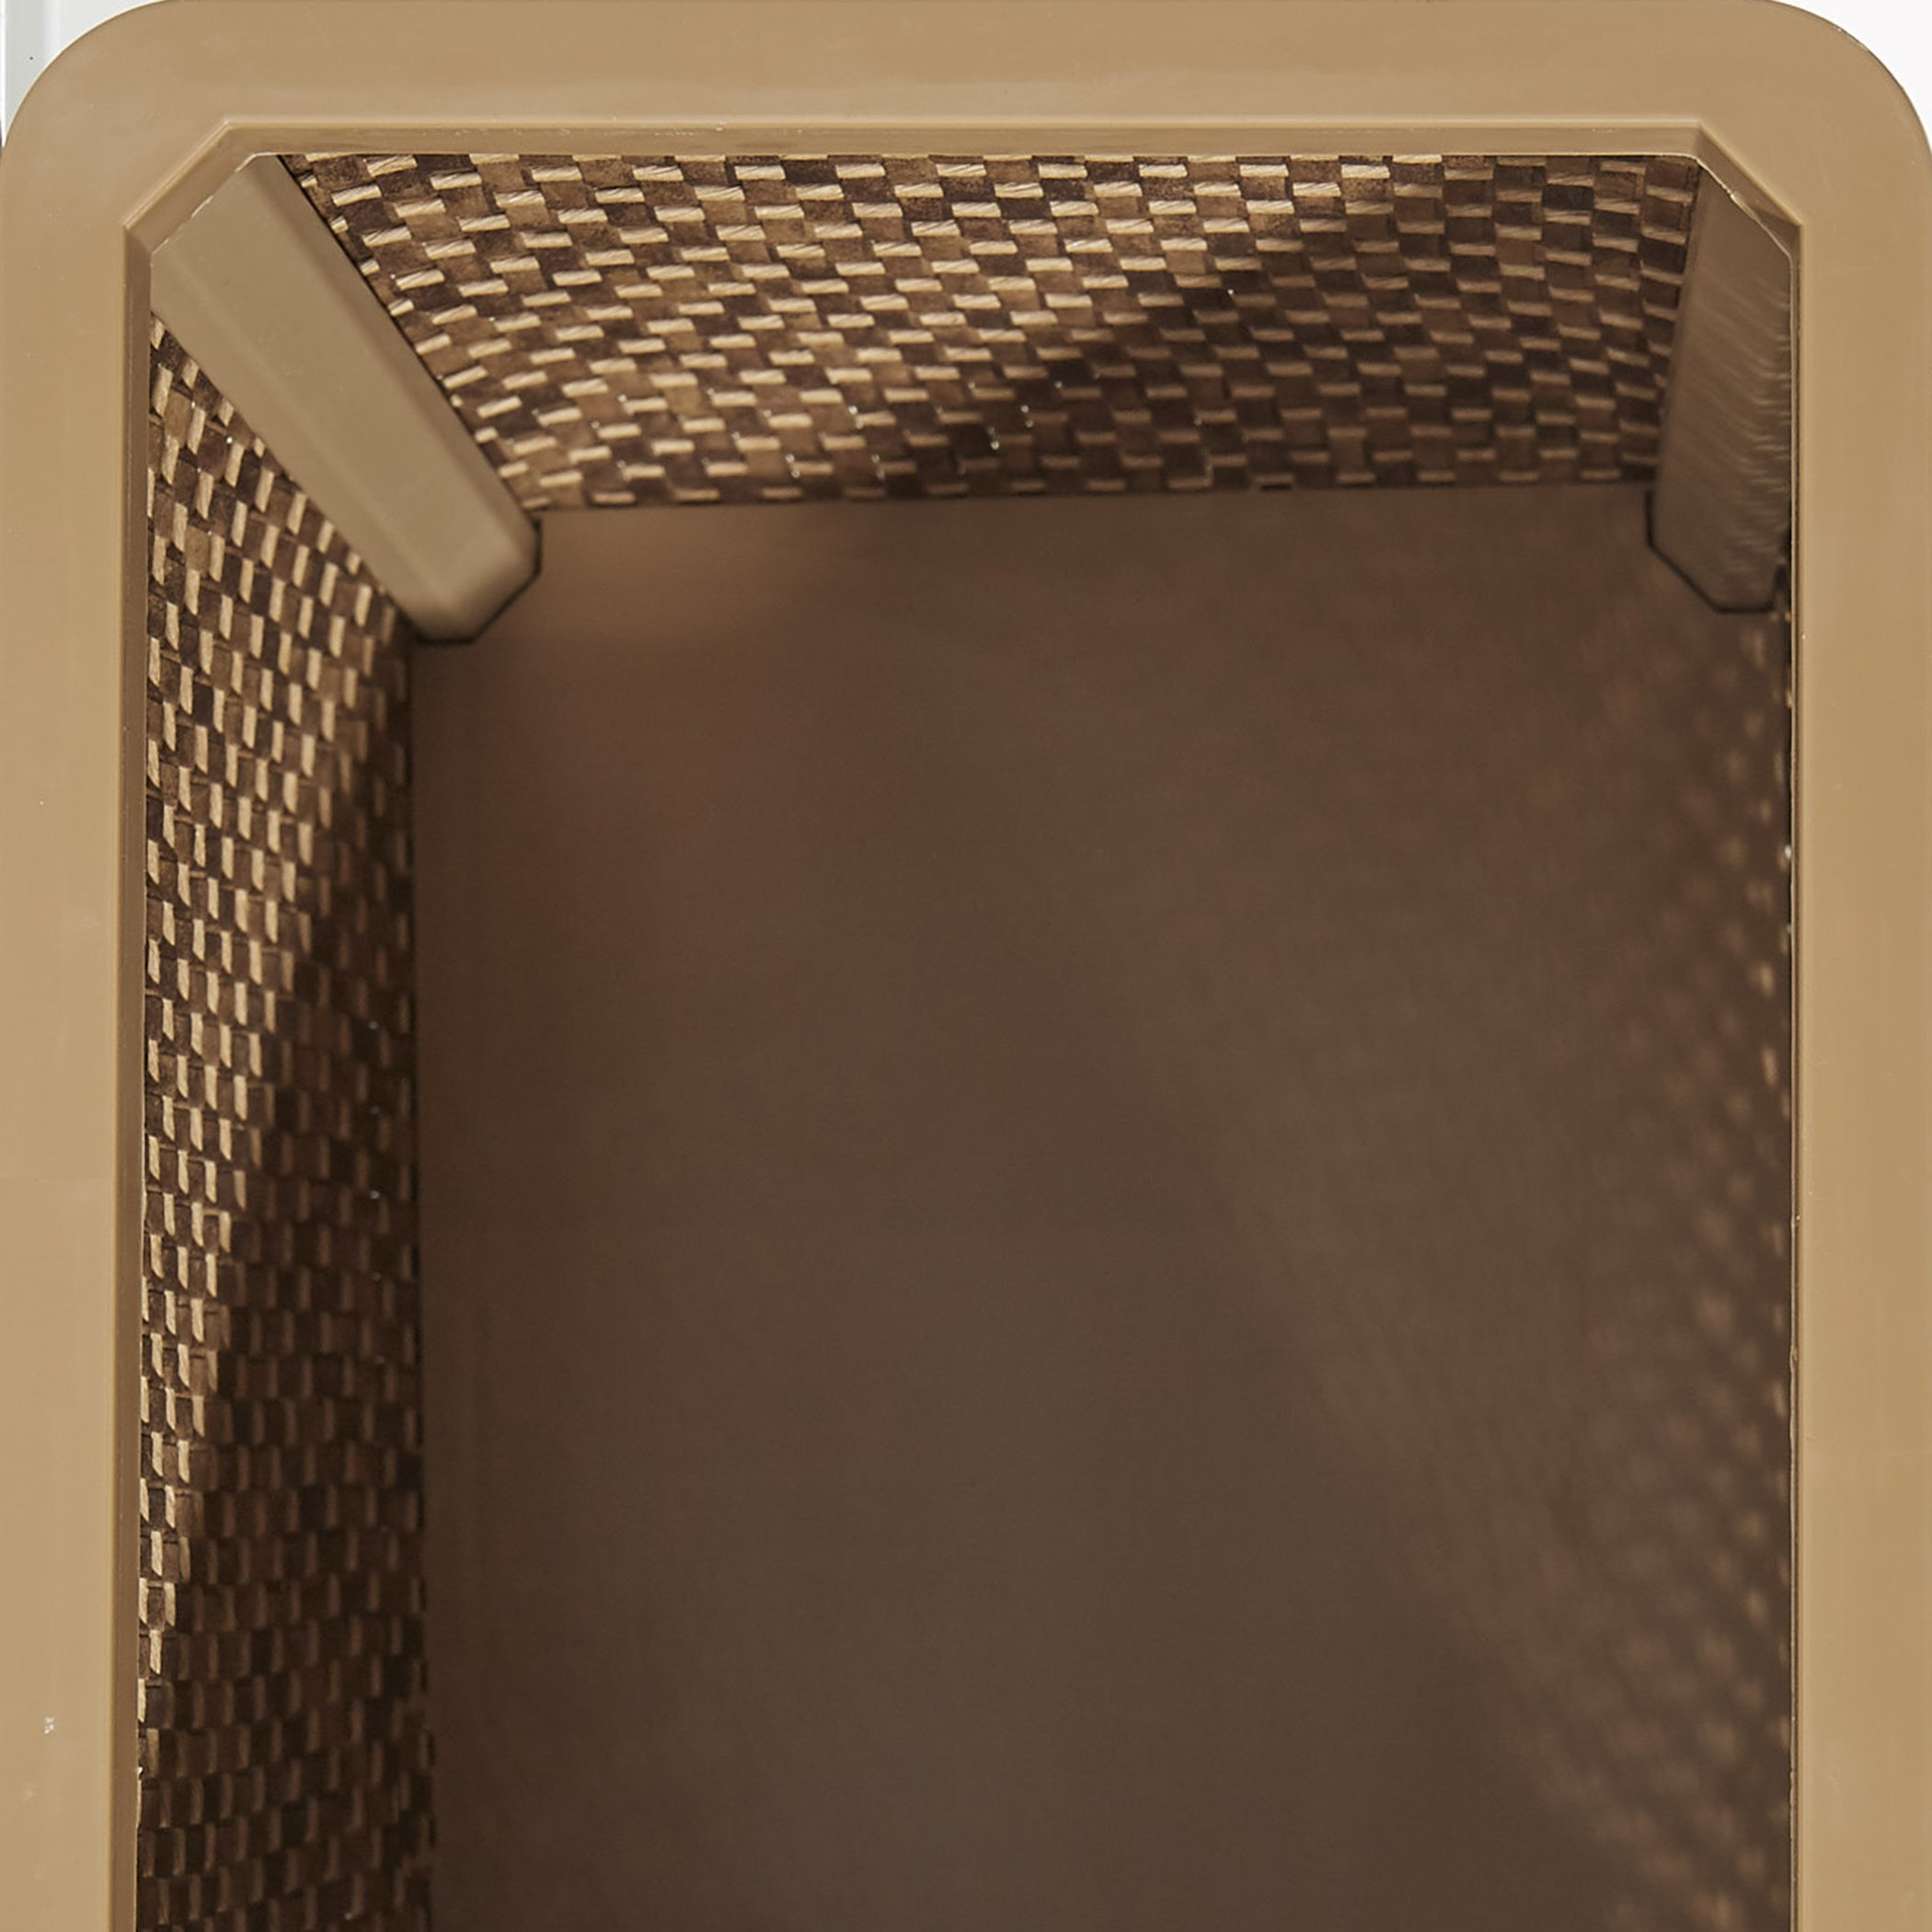 Lamont Home Carter Collection - Upright Hamper by Lamont Home (Image #8)